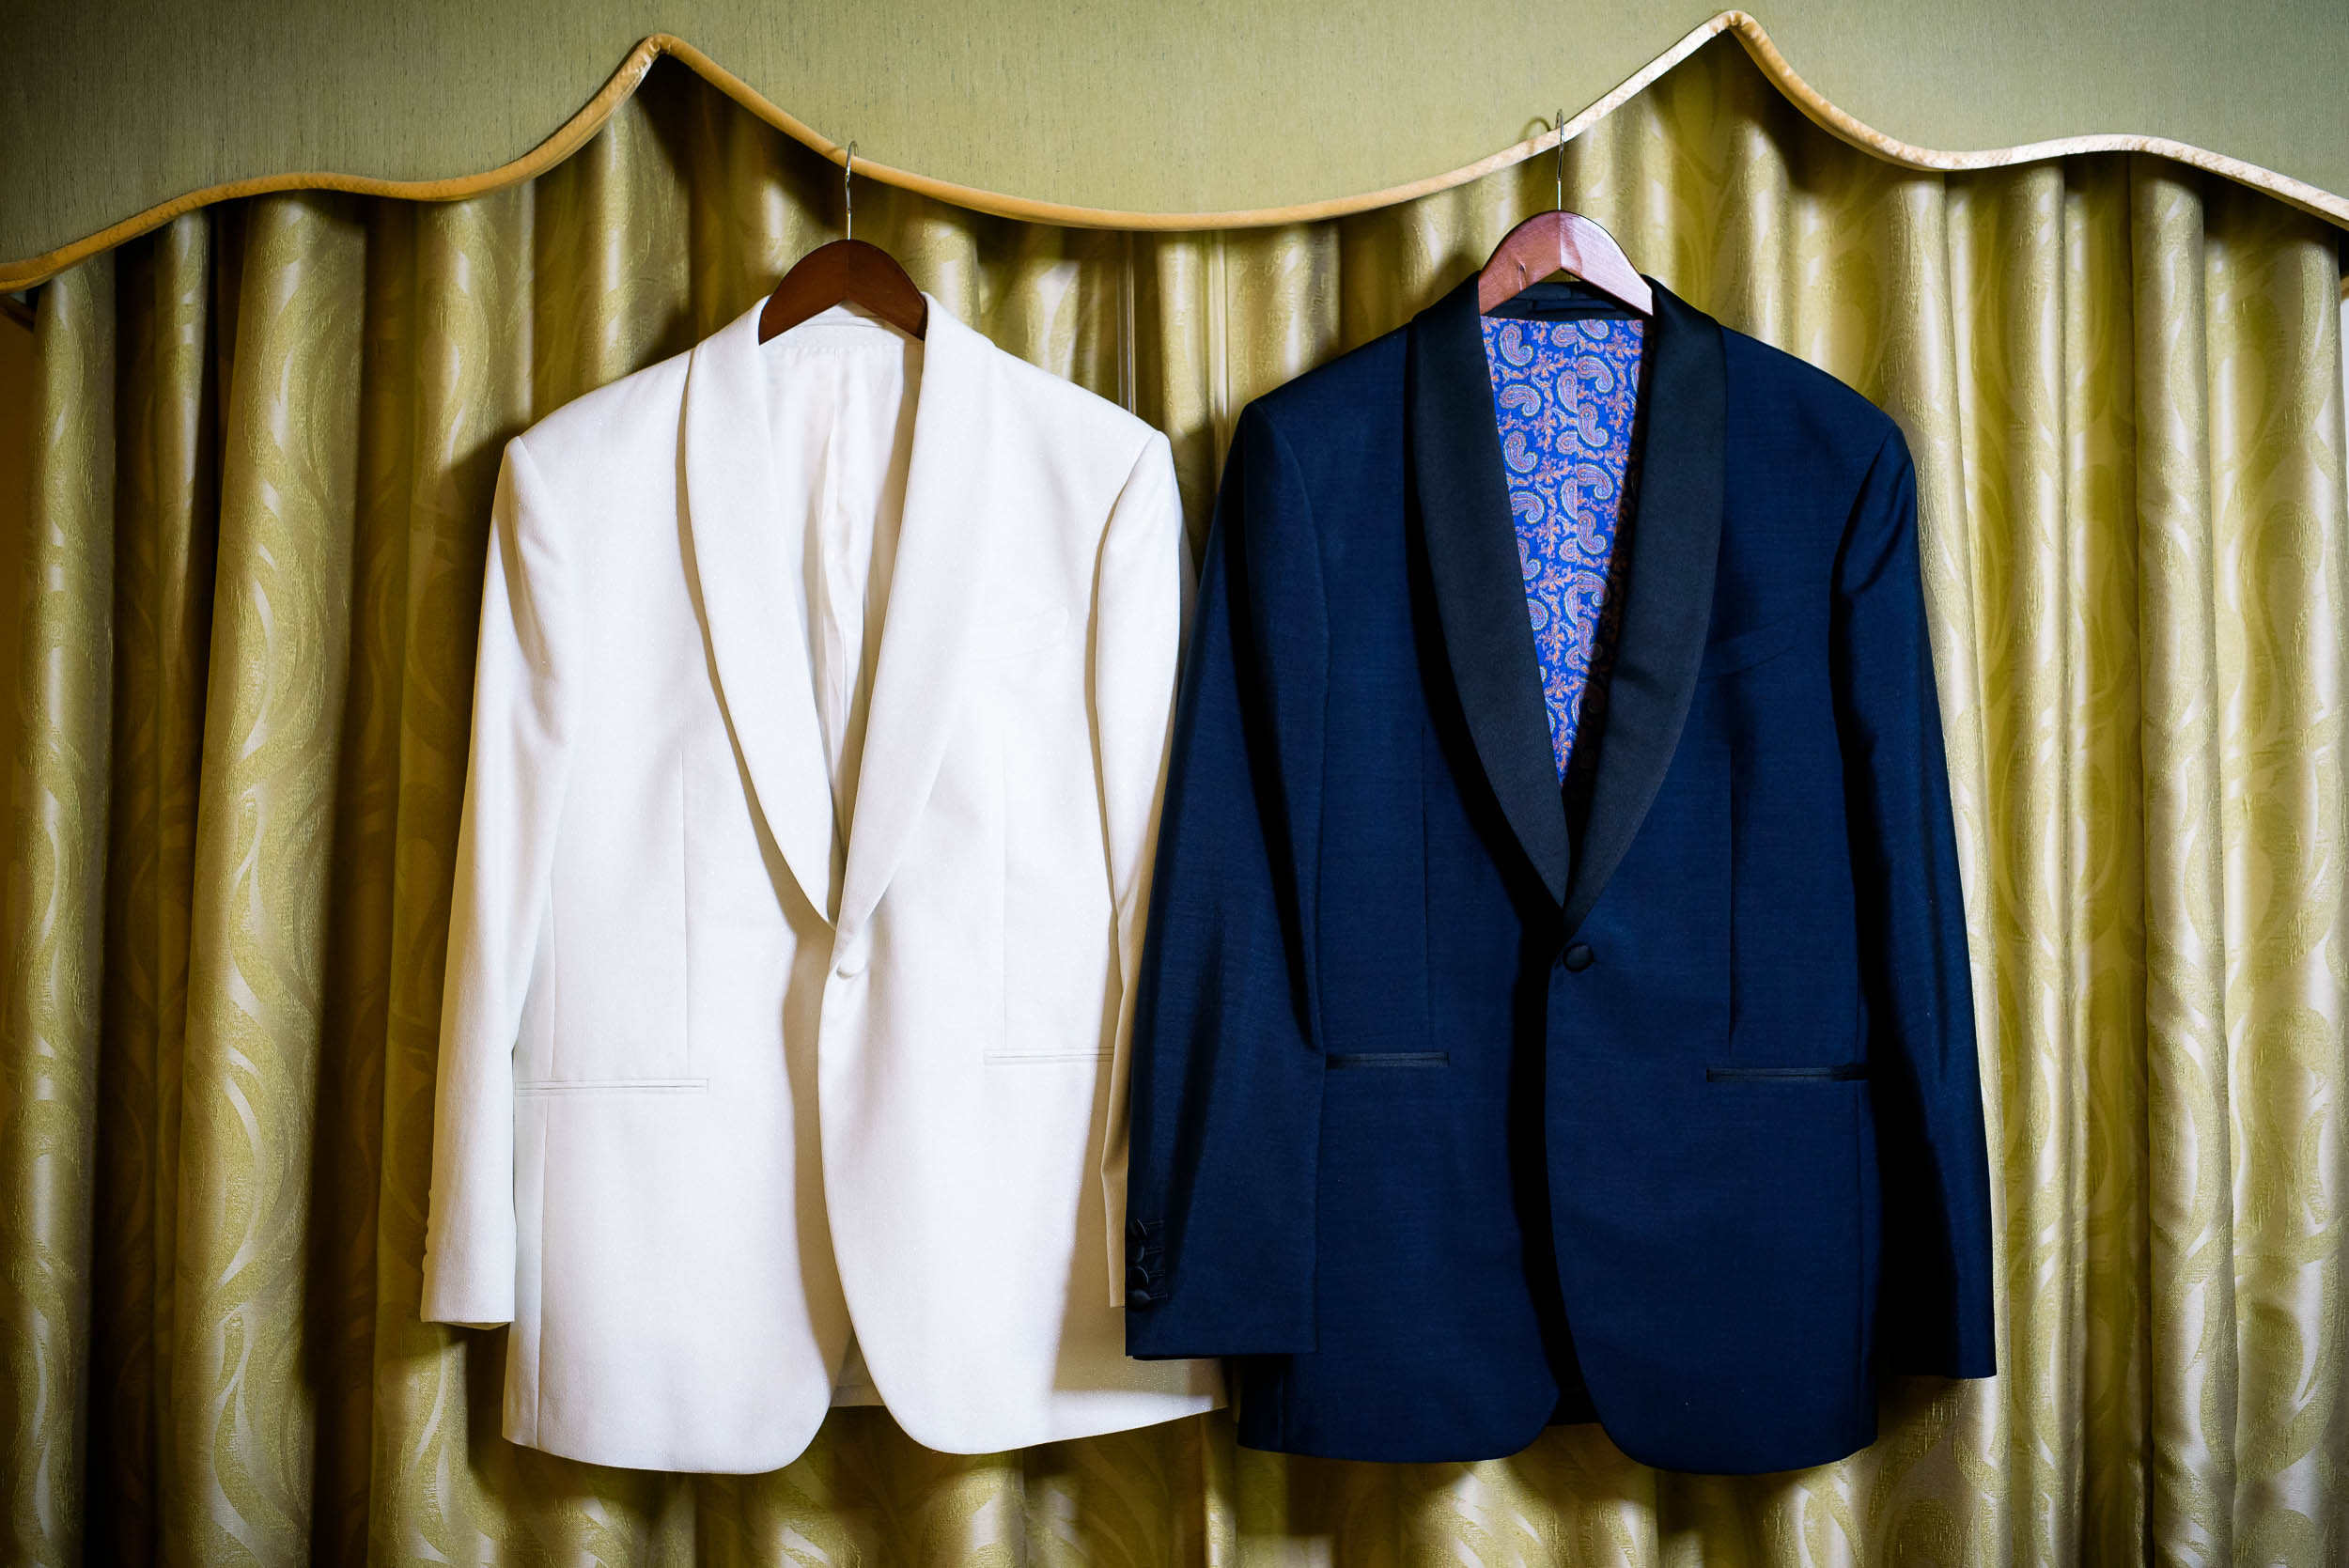 Grooms' suits for luxurious fall wedding at the Chicago Symphony Center captured by J. Brown Photography. See more wedding ideas at jbrownphotography.com!